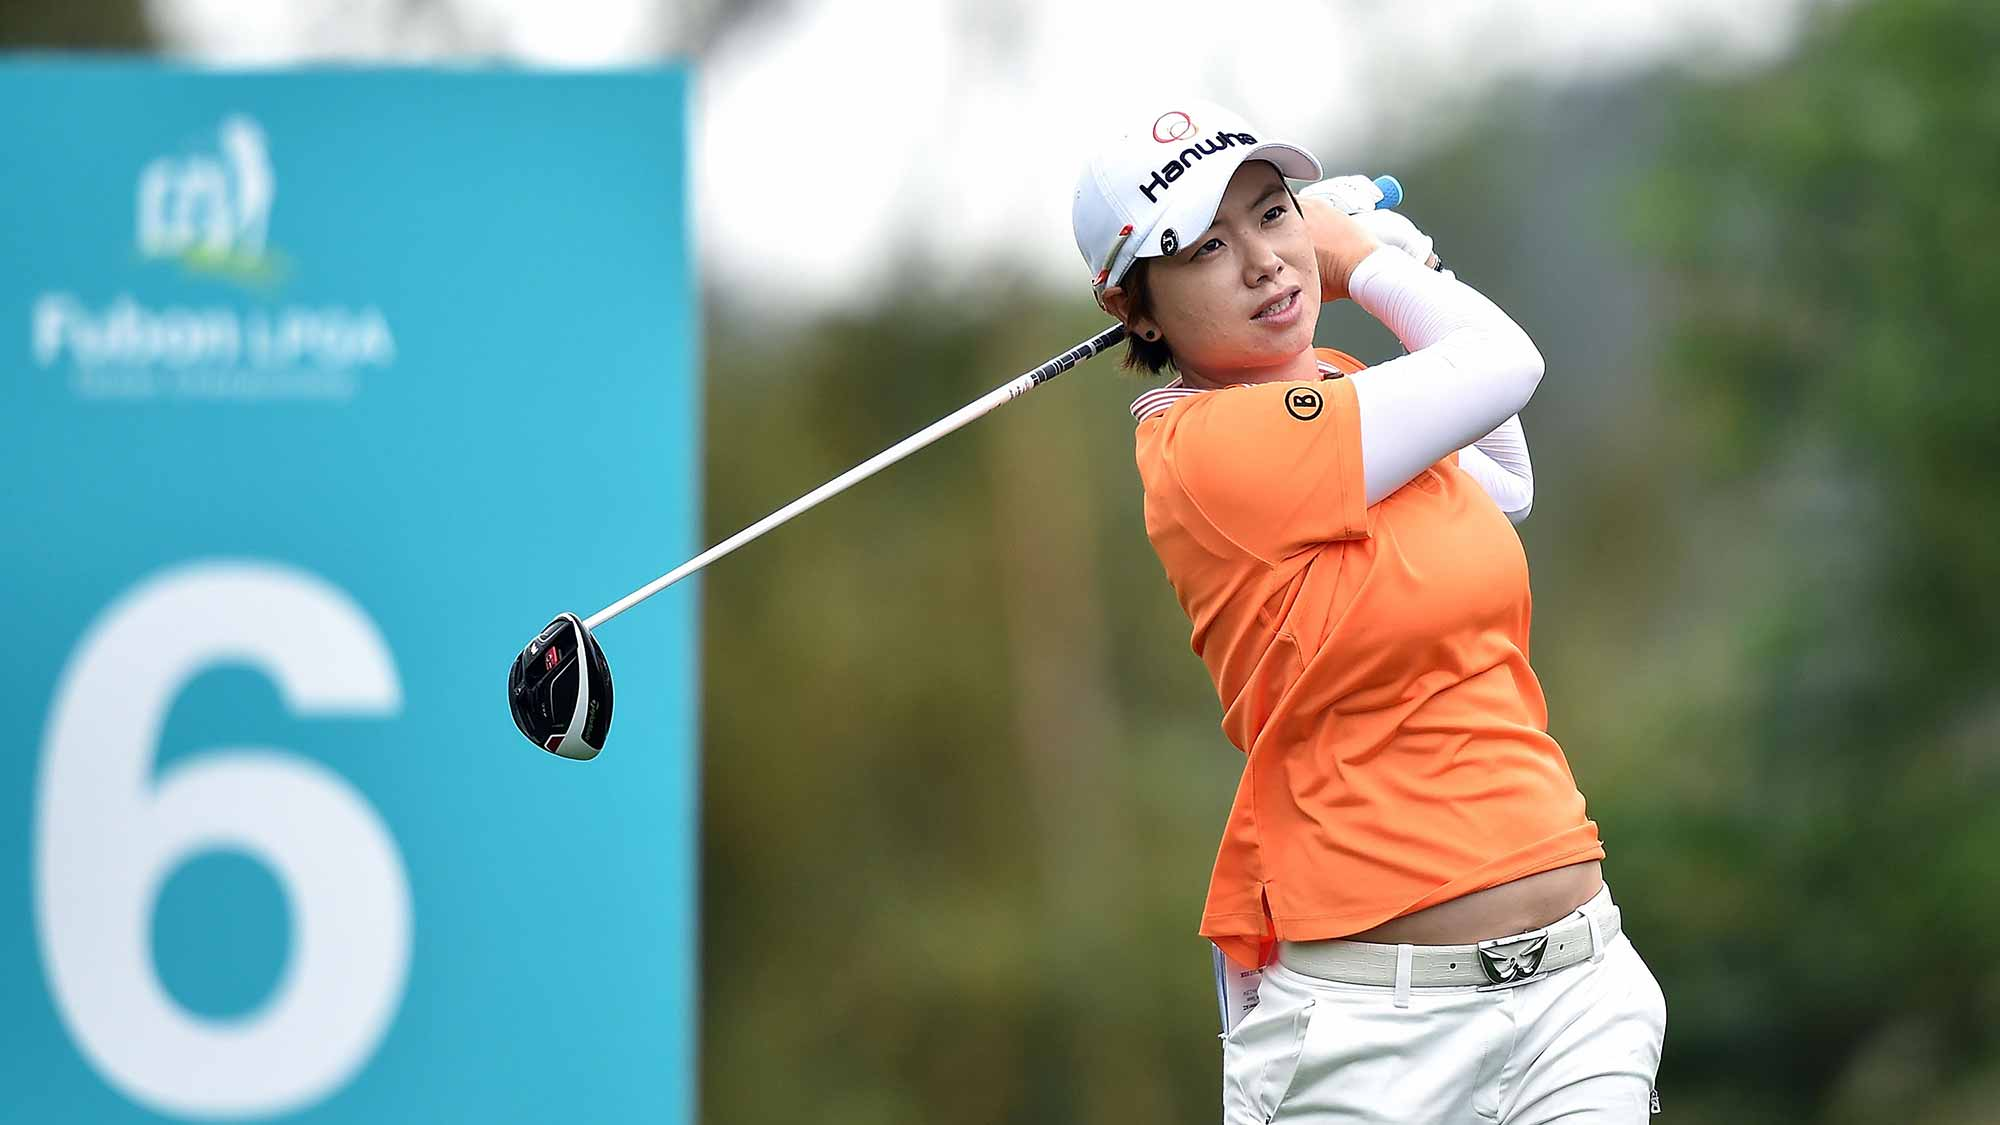 Eun-Hee Ji of South Korea plays a shot during the round second of 2015 Fubon LPGA Taiwan Championship at Miramar Golf Country Club